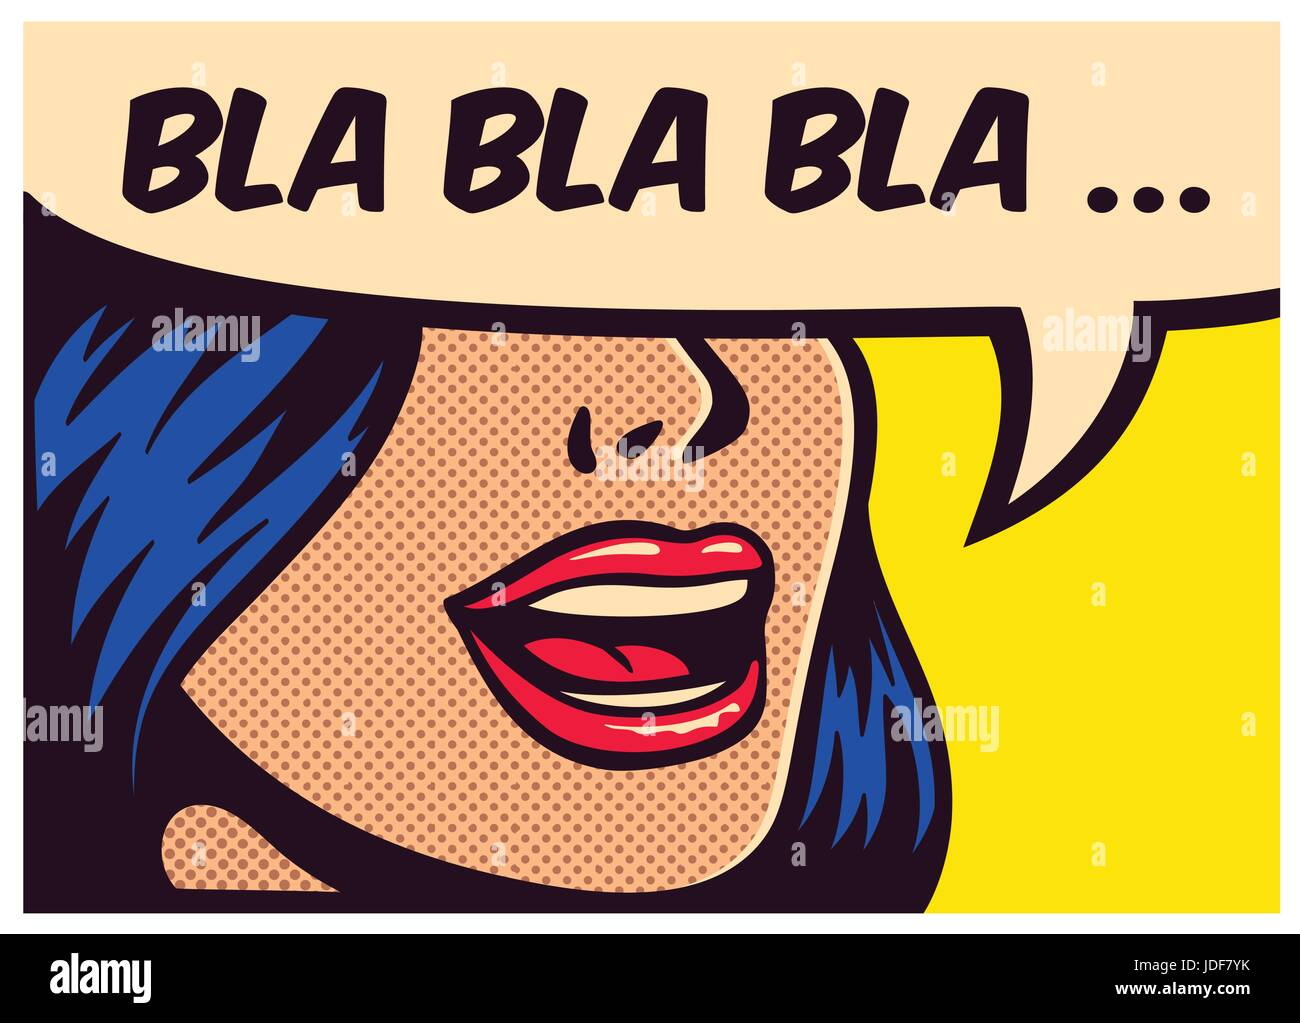 pop art style comic book panel with girl talking nonsense small talk stock vector art. Black Bedroom Furniture Sets. Home Design Ideas